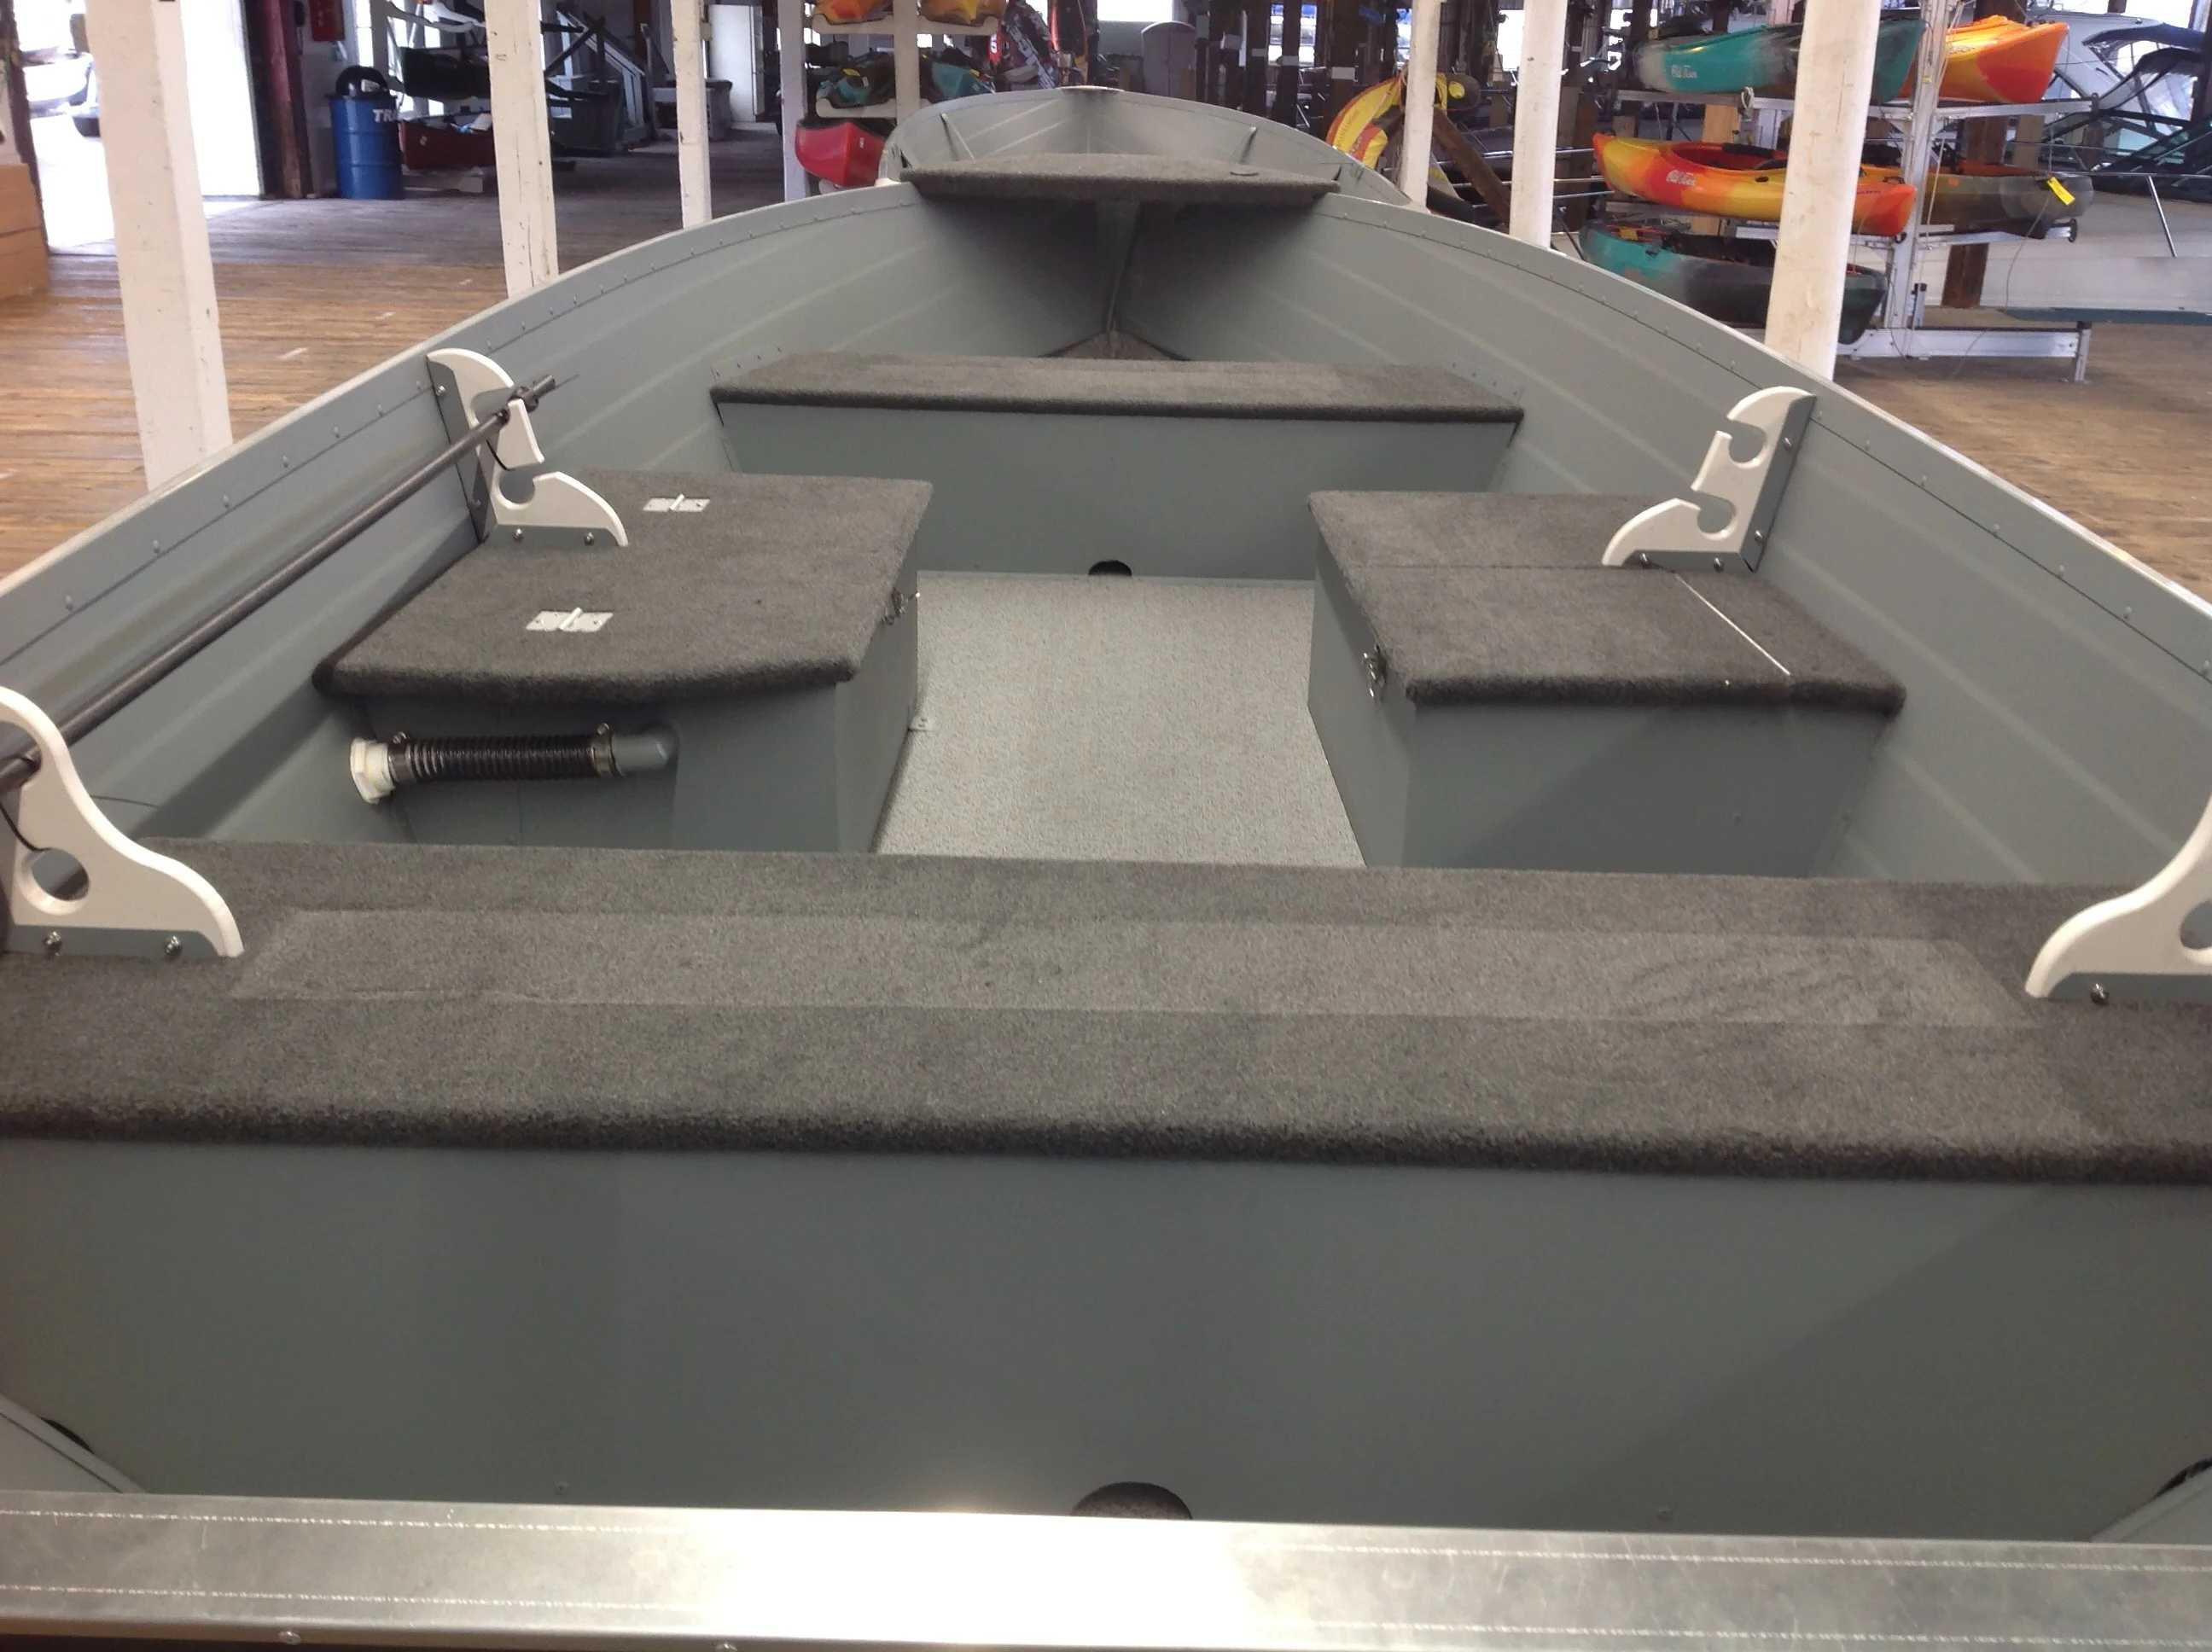 2021 Smoker Craft boat for sale, model of the boat is 14 Big Fish Tl Dlx & Image # 5 of 8